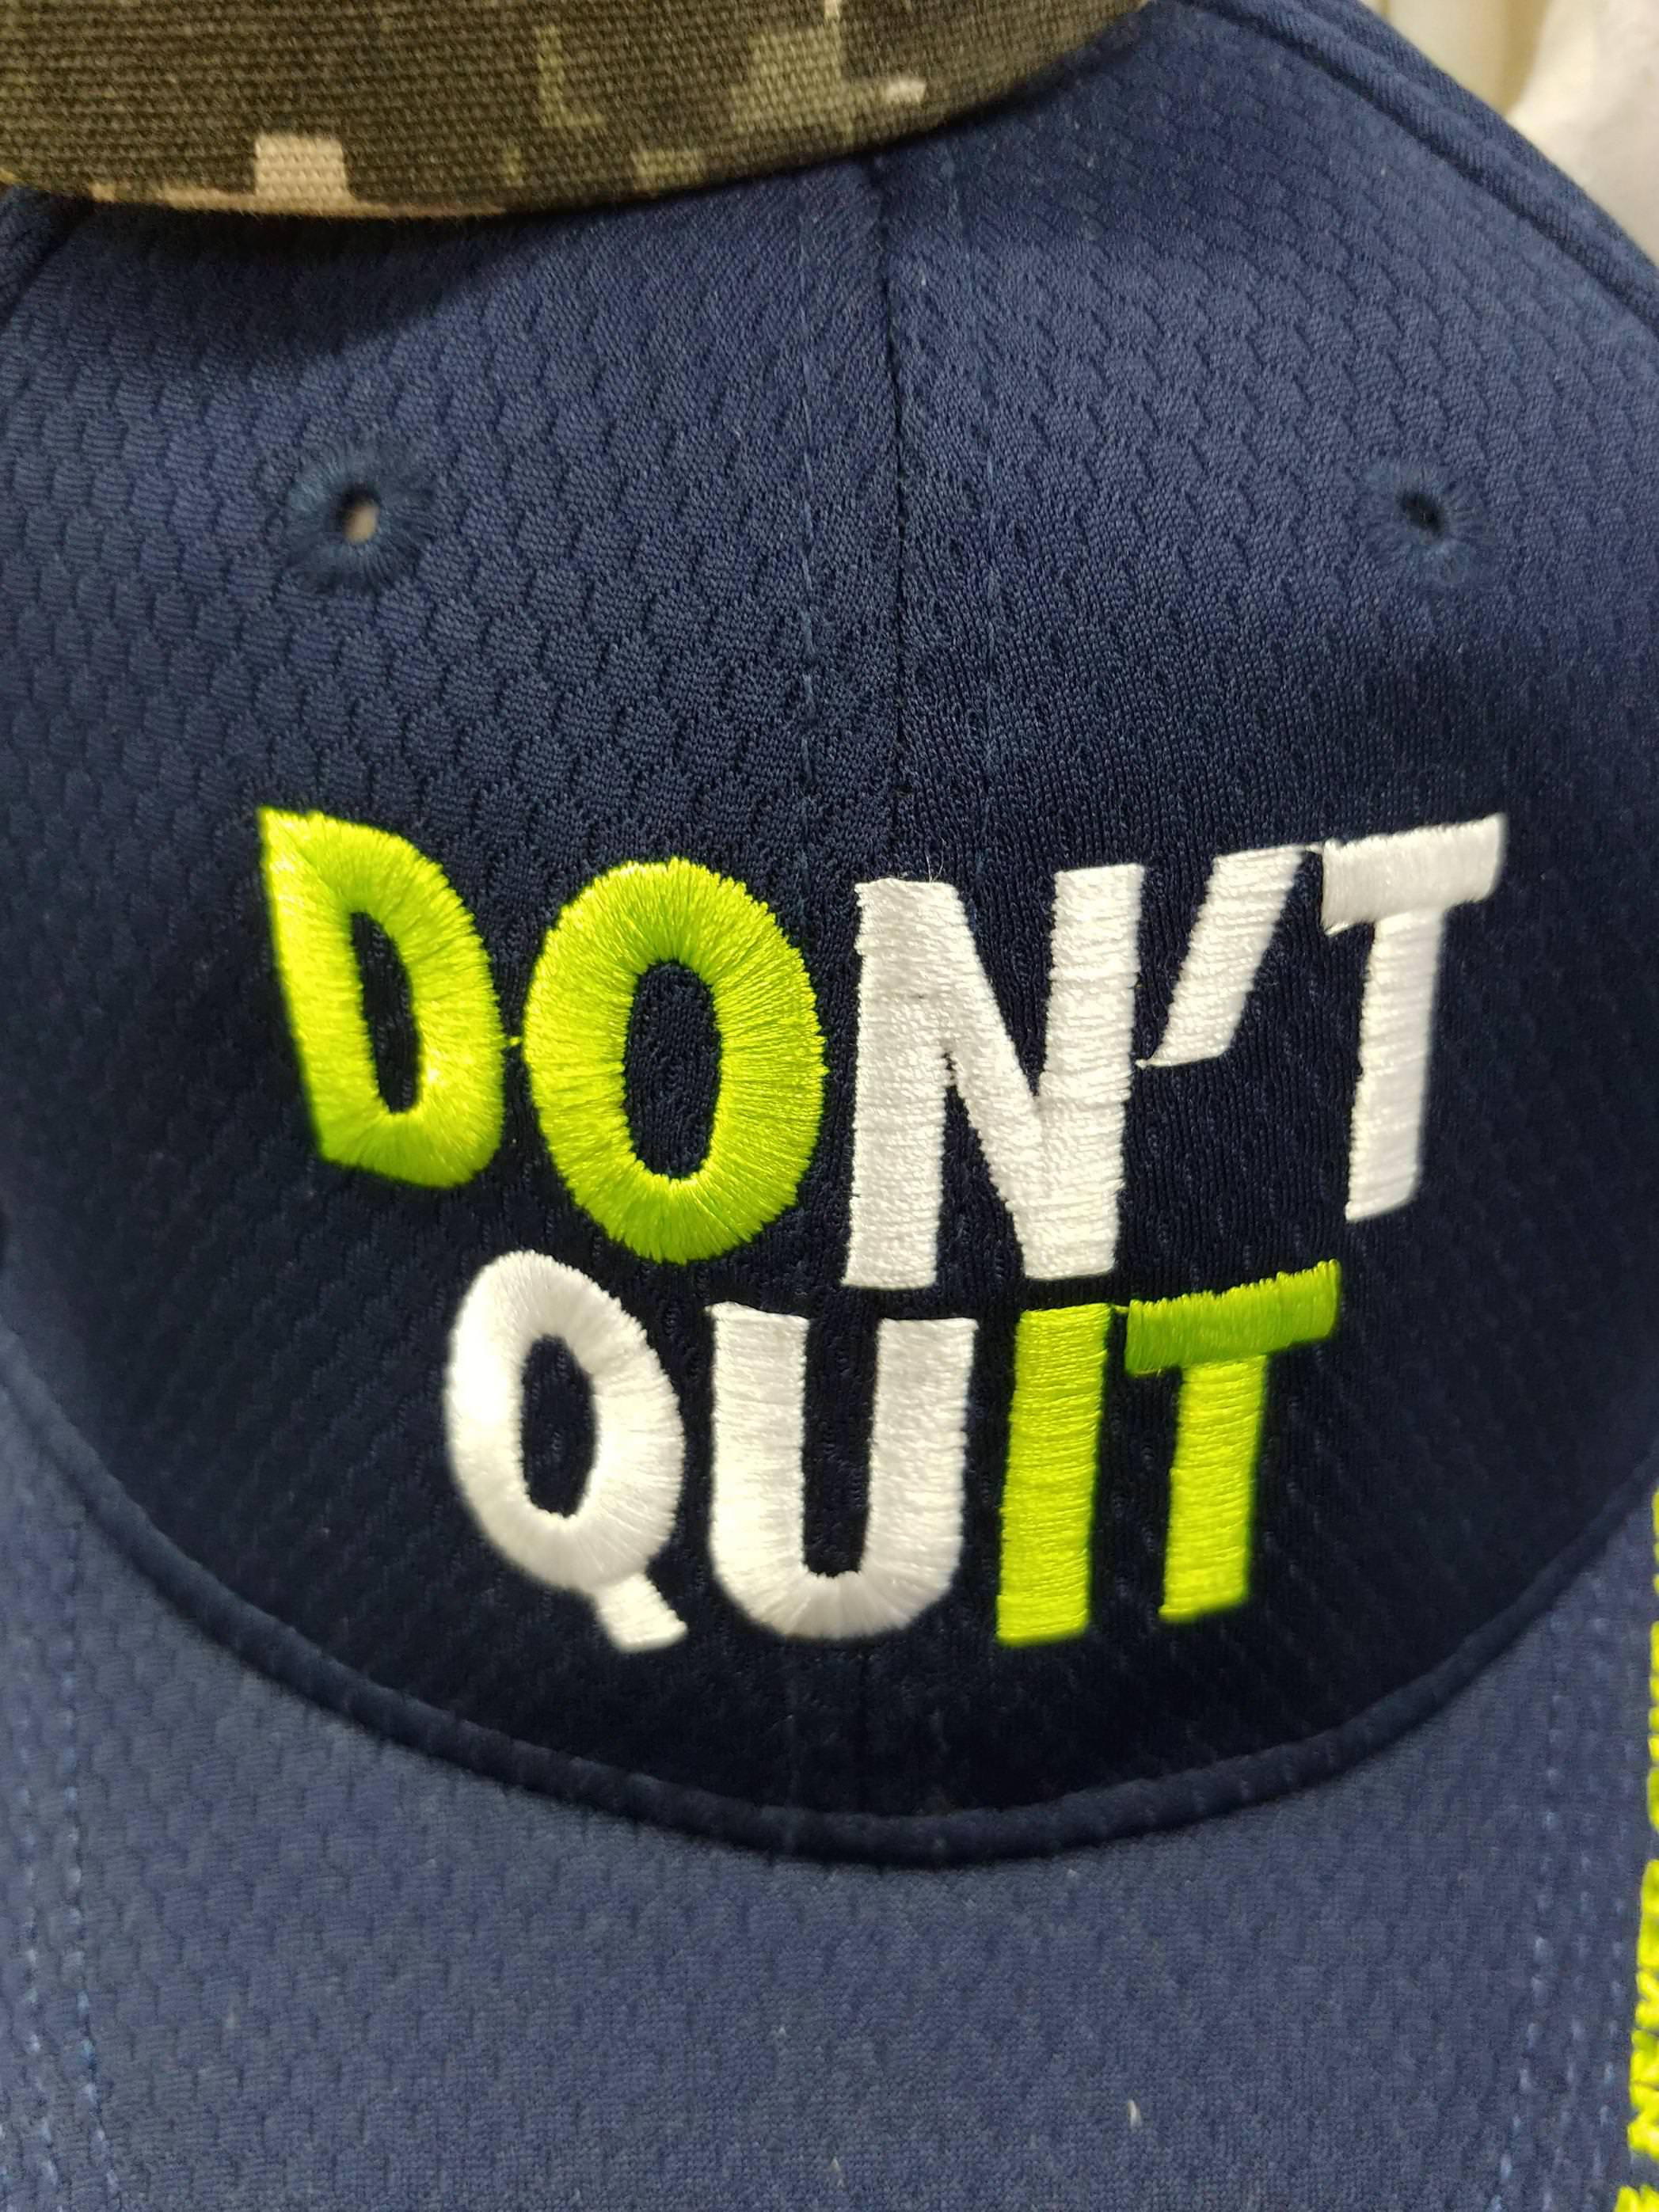 [Image] An Inspirational Hat